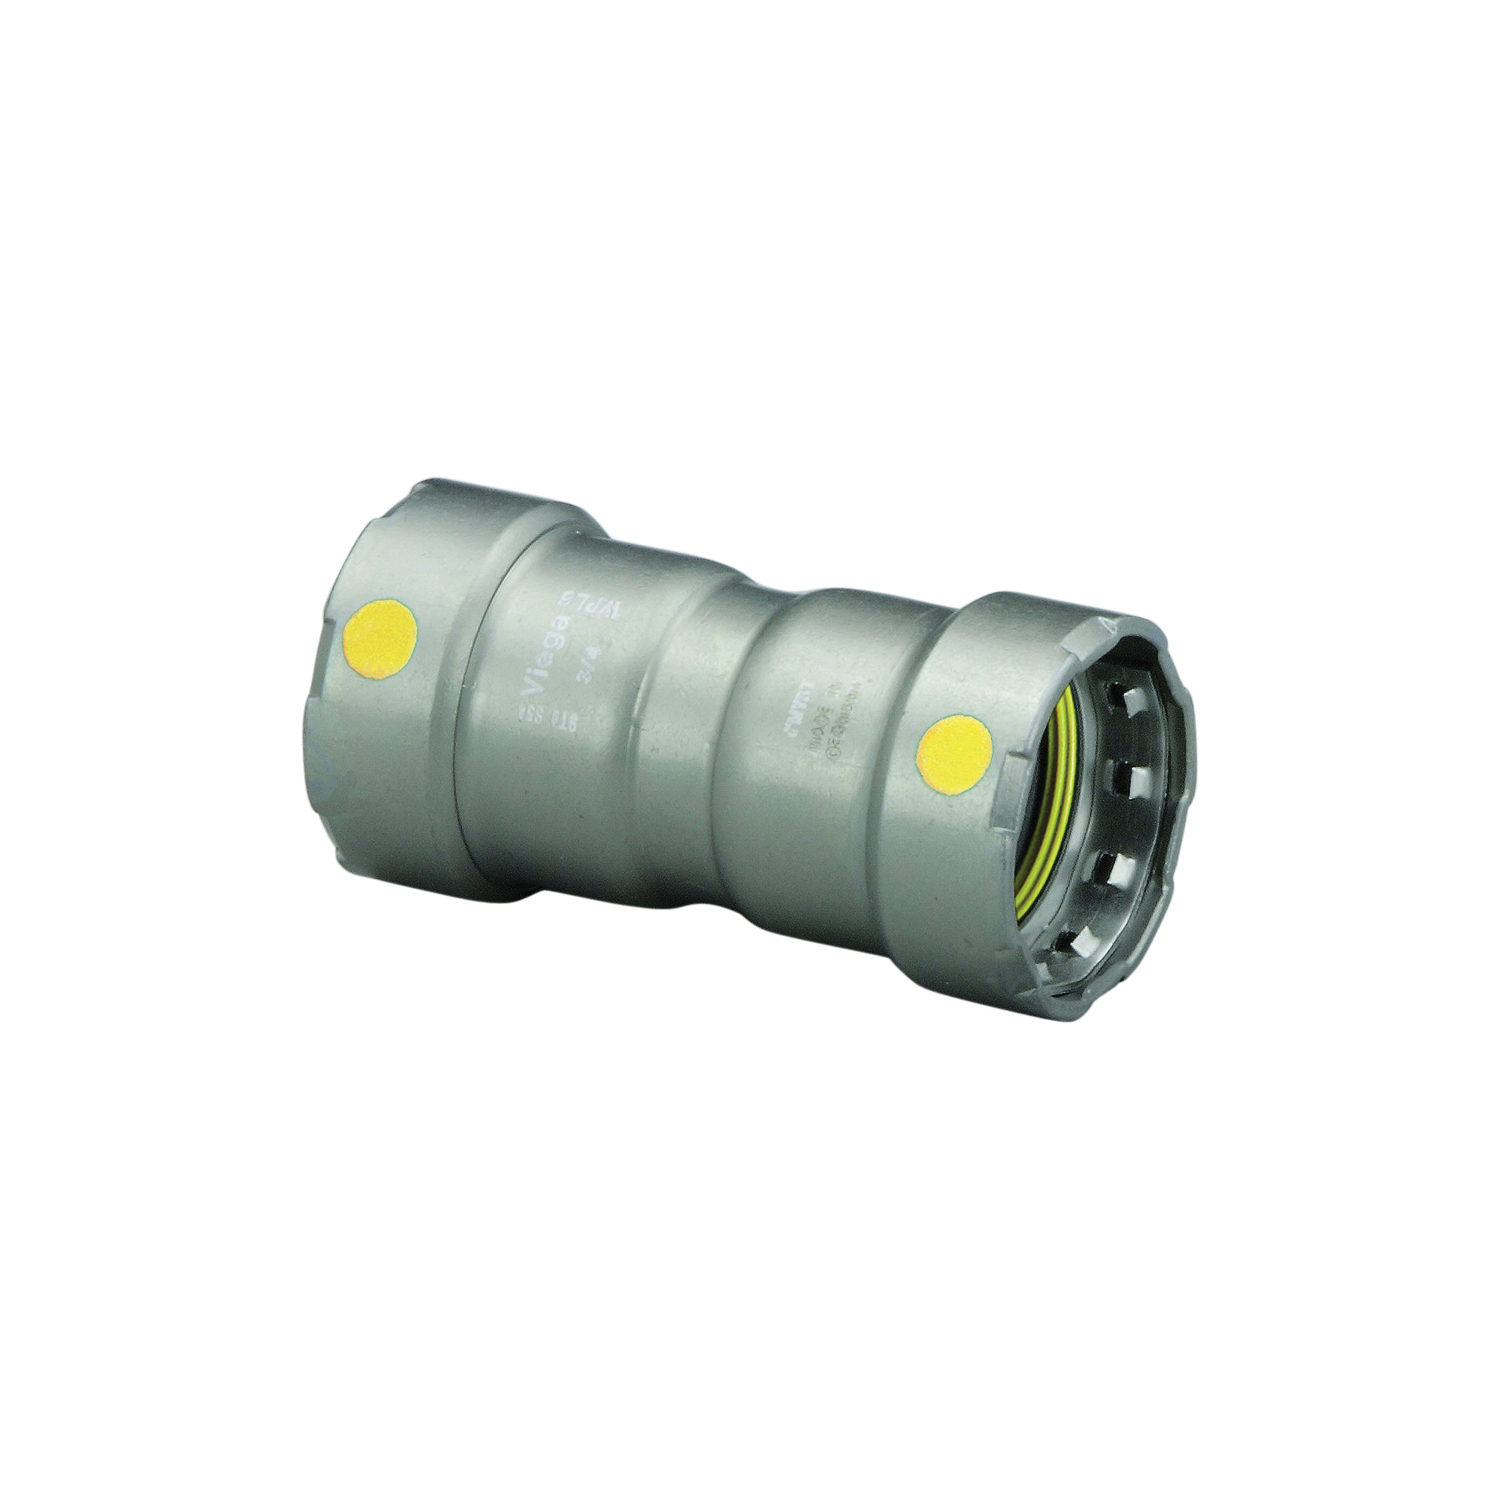 MegaPress®G 22009 Pipe Coupling With Stop, 3/4 in, Press